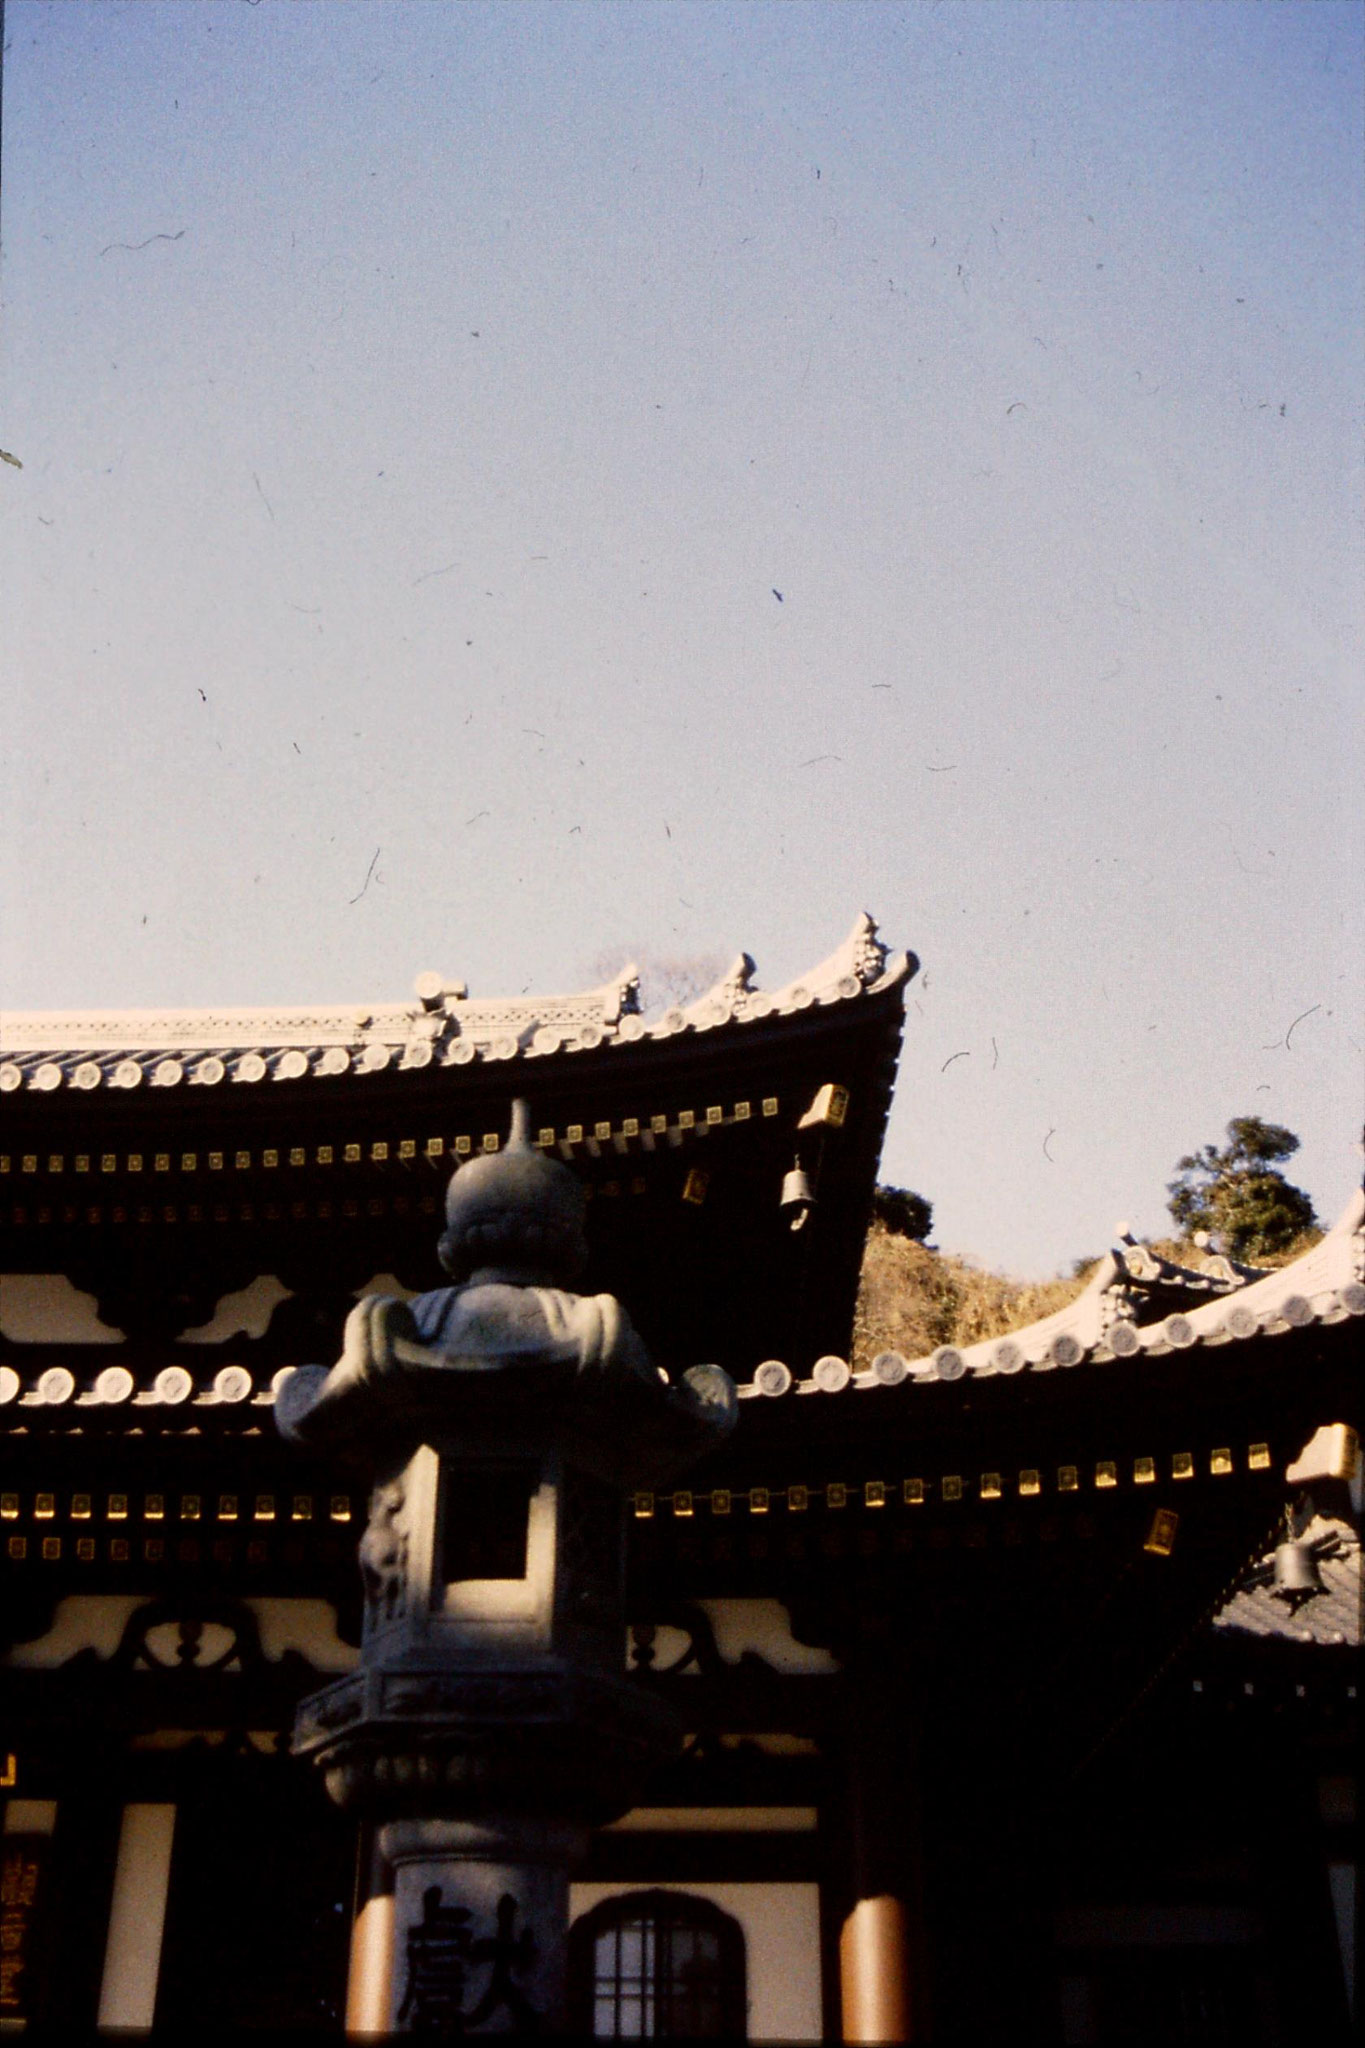 29/1/1989: 35: kite over temple